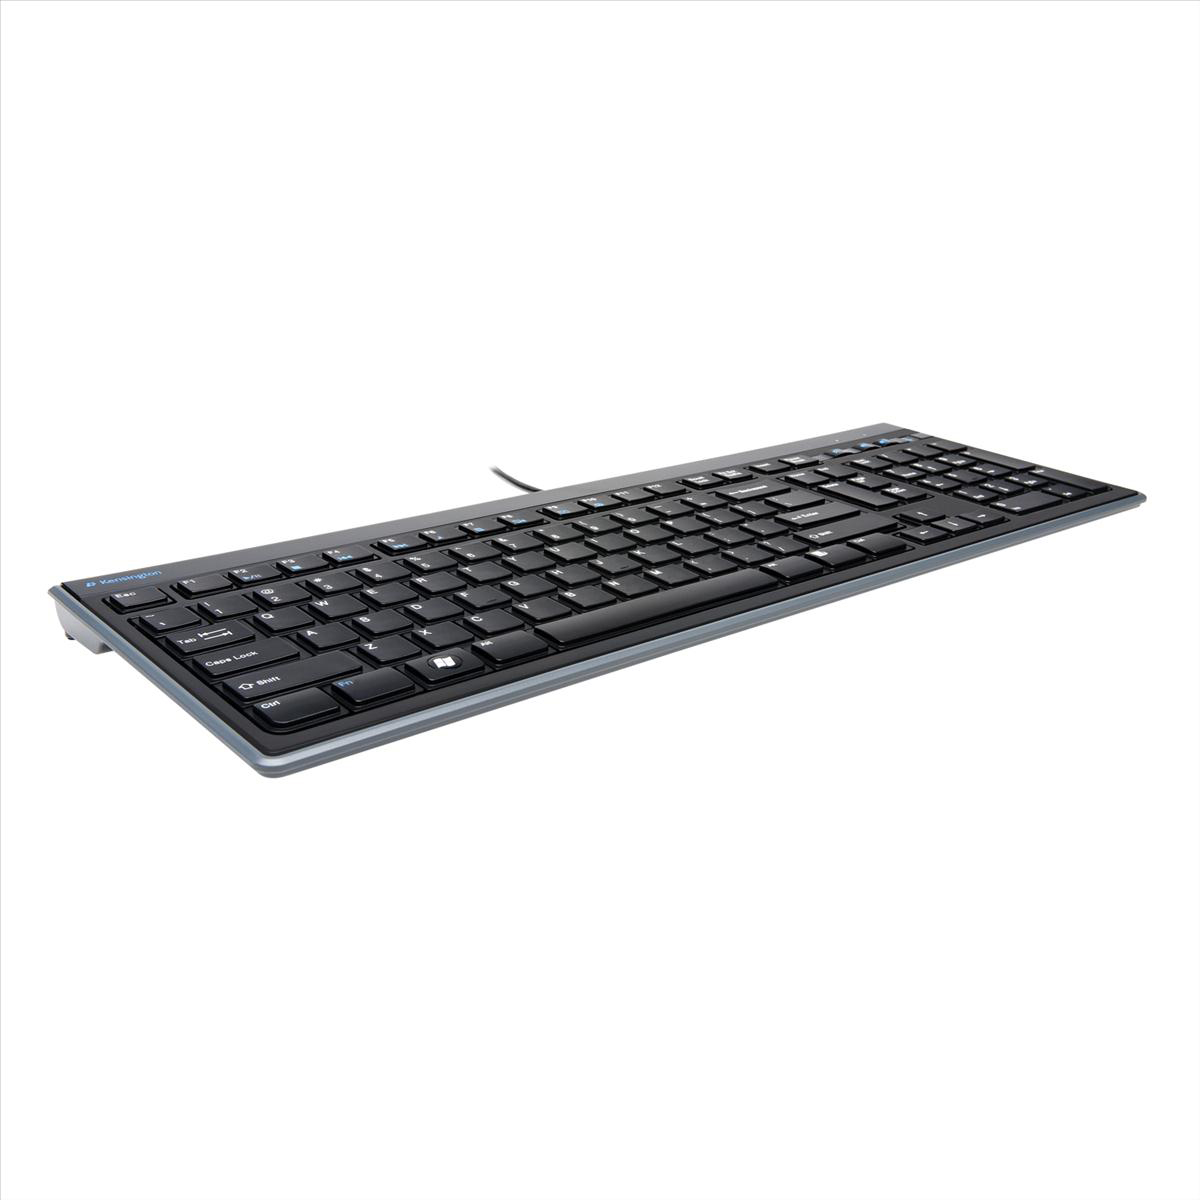 Kensington Advance Fit Slim type Keyboard Tilting USB Wired 1900mm Lead Ref K72357UK